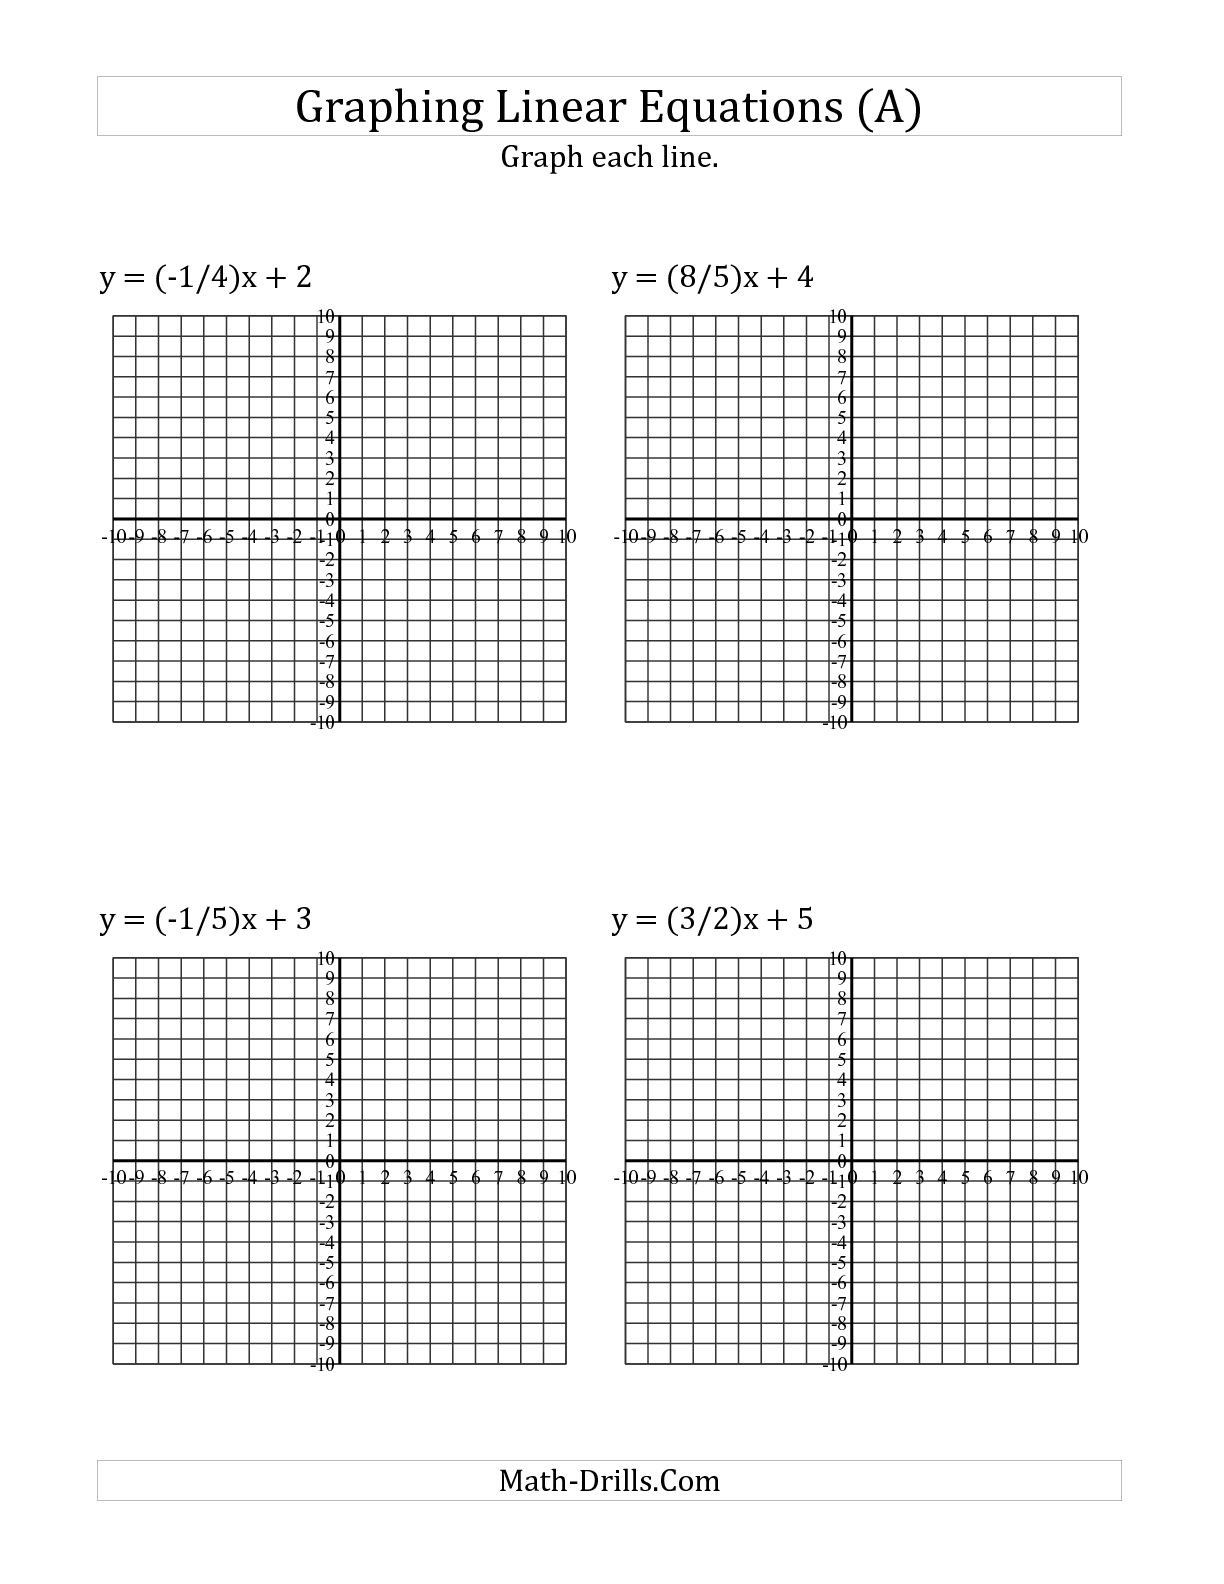 Periodic Graphing Linear Inequalities Worksheet Answers